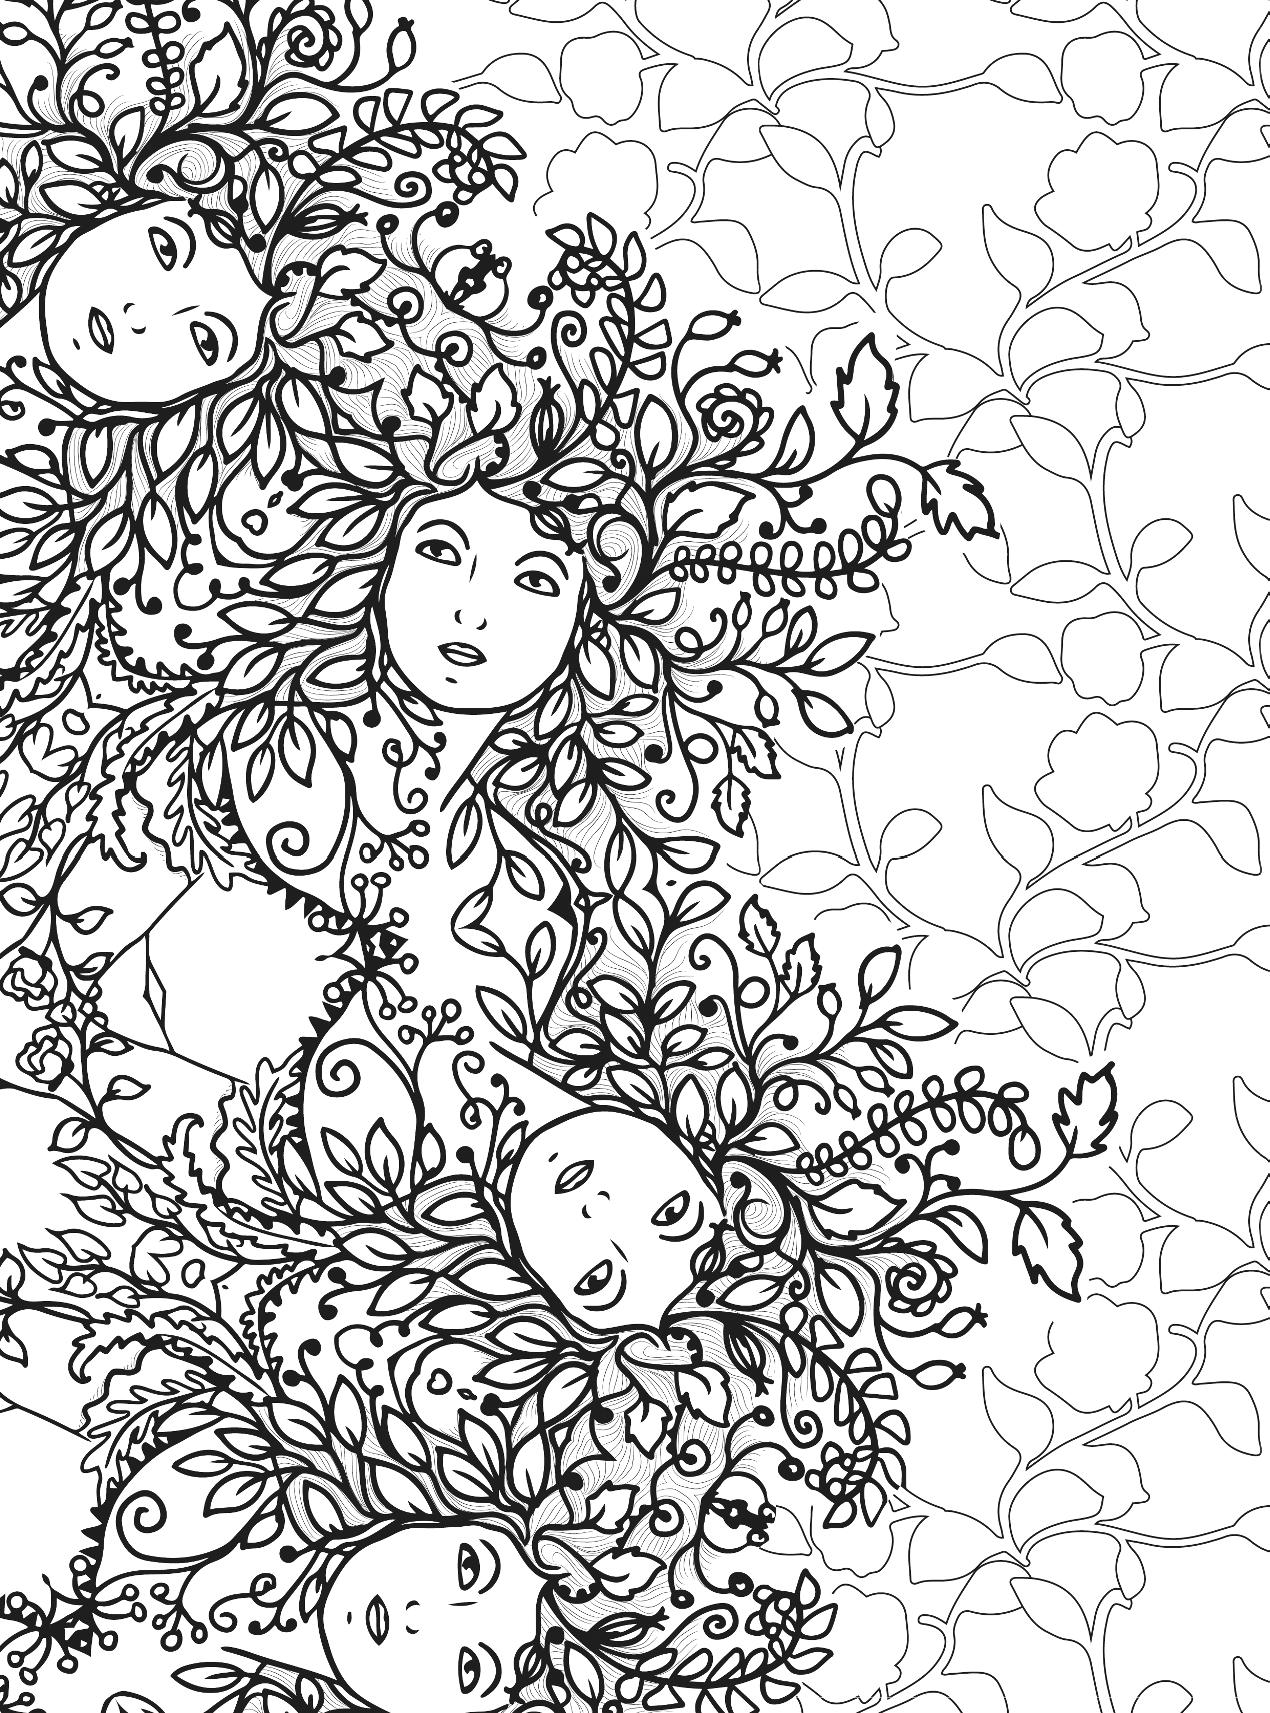 Free coloring pages on a variety of themes All coloring pages are printable Click here to start coloring